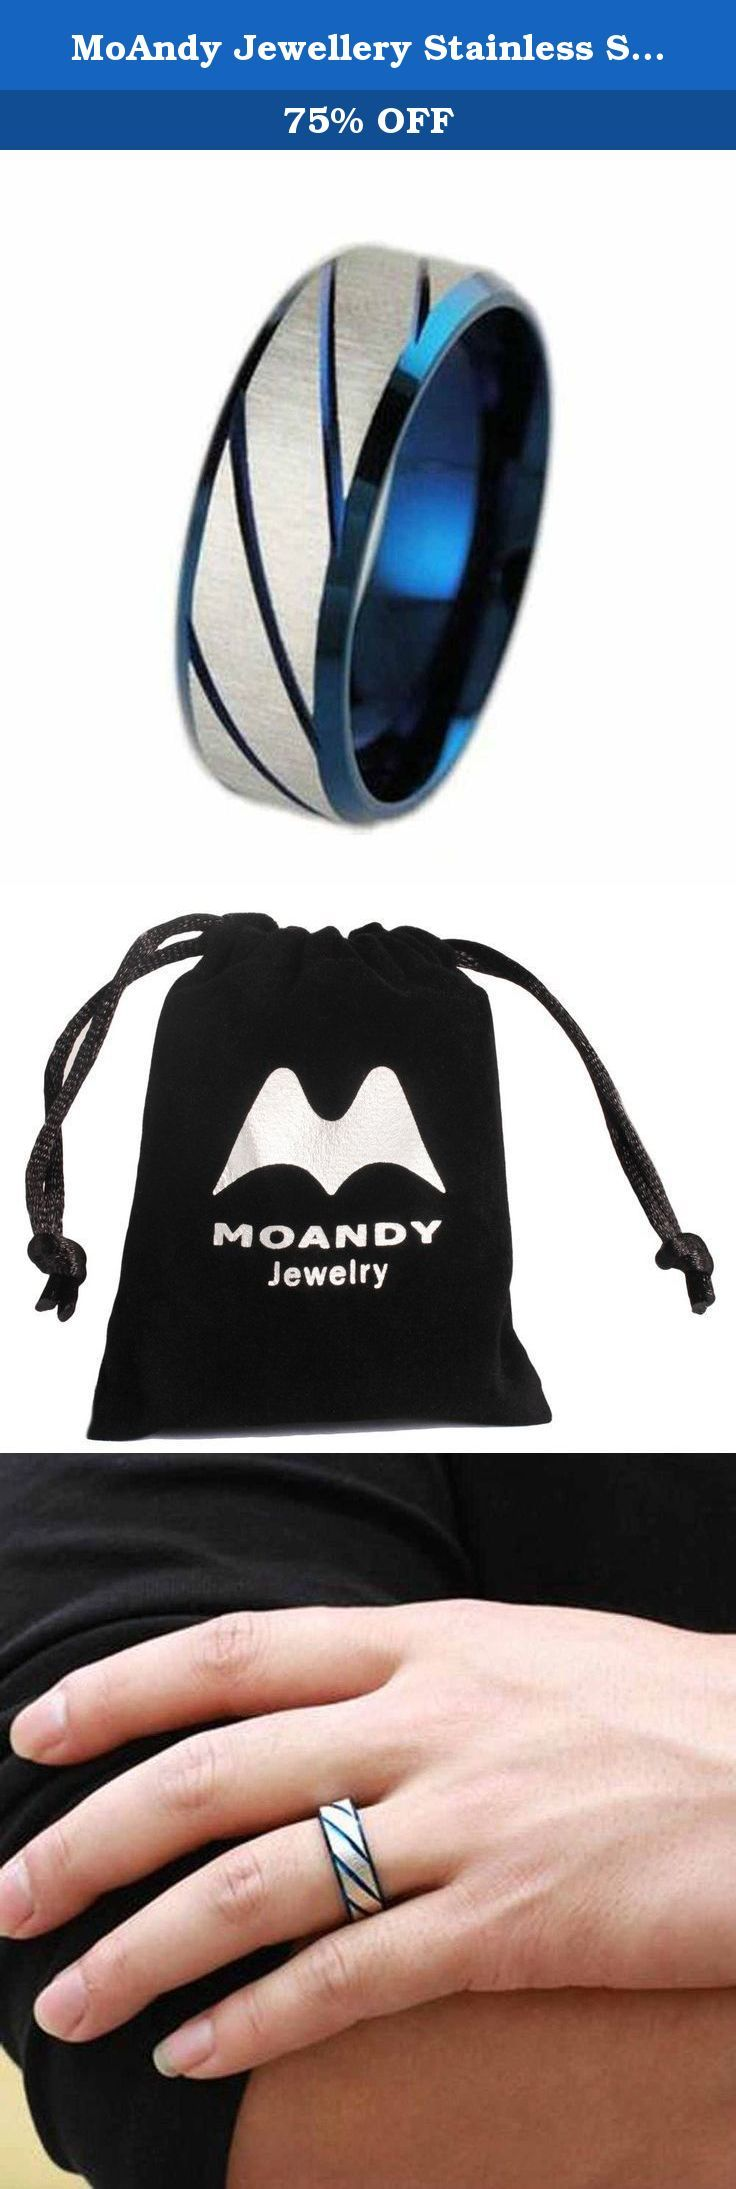 MoAndy Jewellery Stainless Steel Stripes Men's Band Rings,US Size 10. The Comfort Fit Design,High Quality Item Size:US Size 10 Type:Rings Condition:New Material:Stainless Steel Gender:Men Brand:MoAndy Accasion:Opening Gifts;Valentine's Day;Birthday;Graduation;Engagement Ship with a Free Gift Bag Color:Blue.